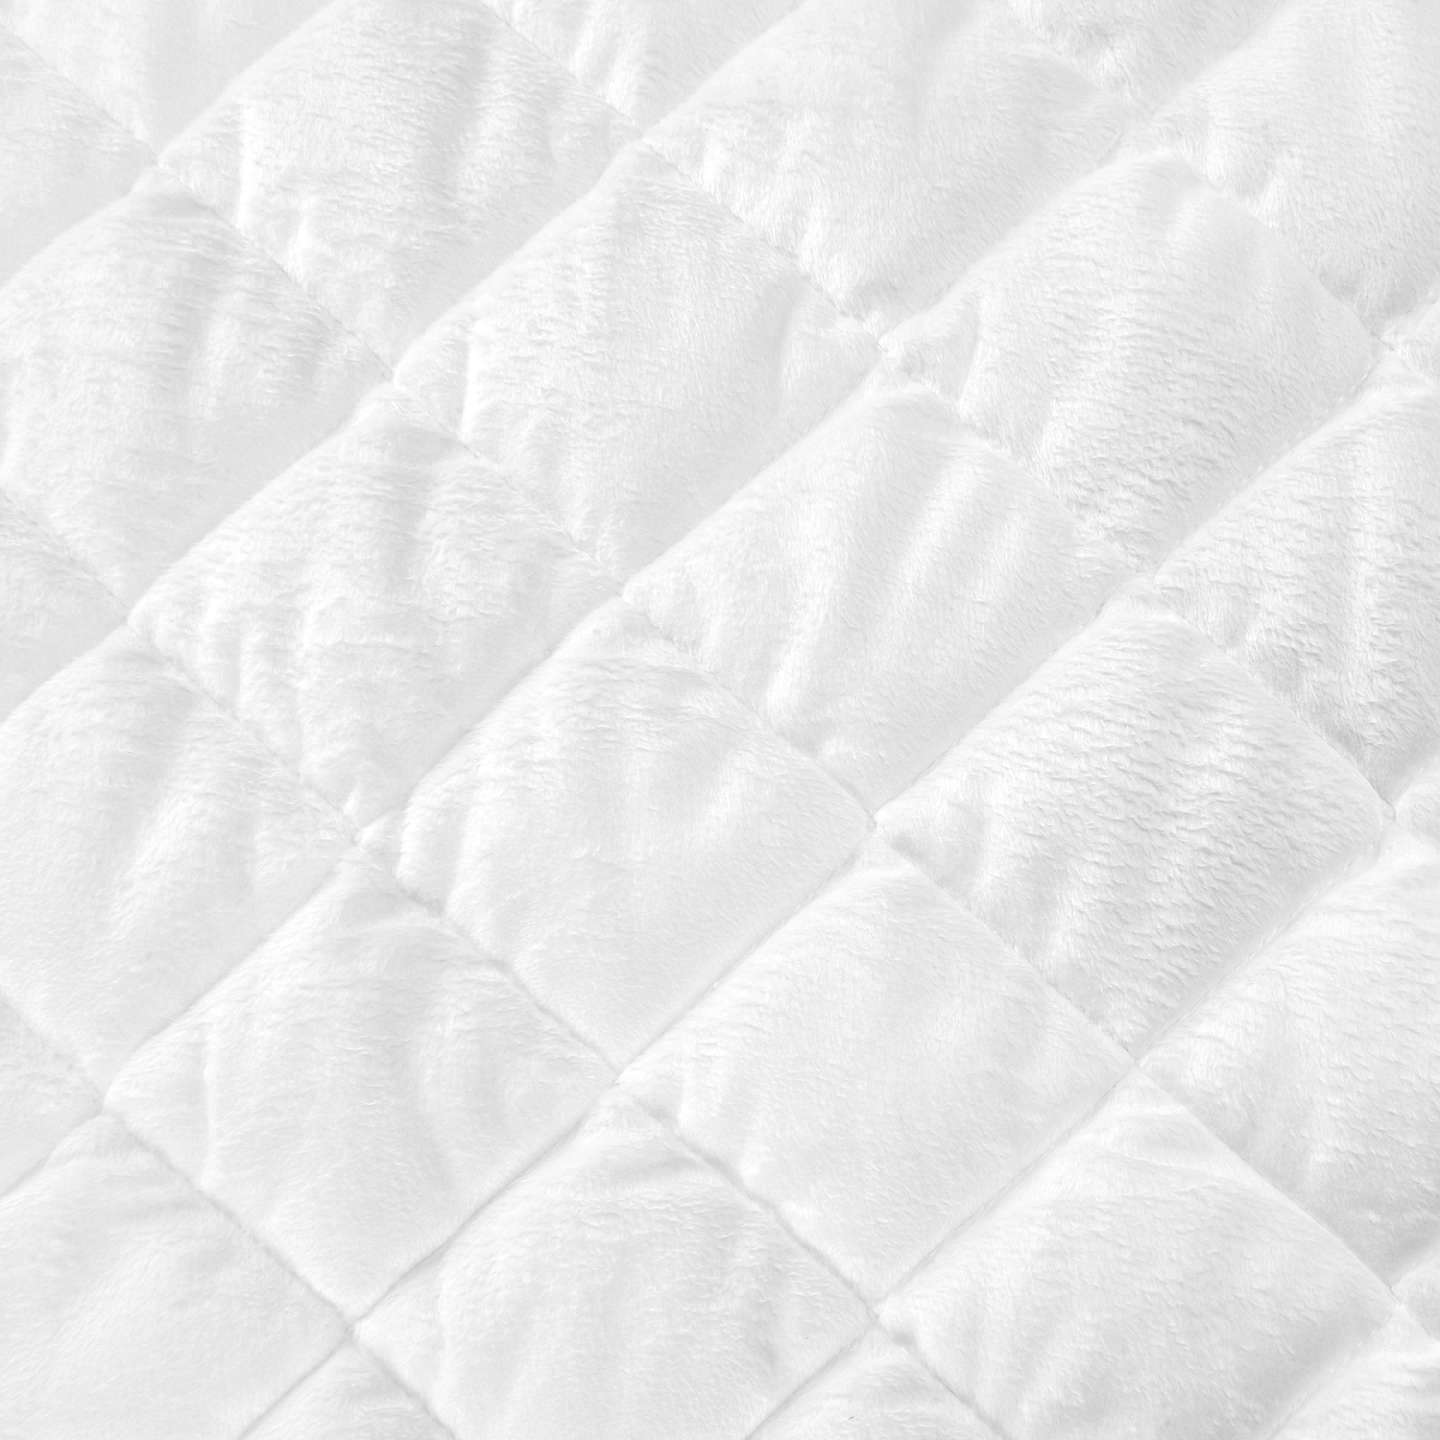 mattress texture. BuyJohn Lewis Micro-Fresh Velour Cotbed Mattress Protector Online At Johnlewis.com Texture